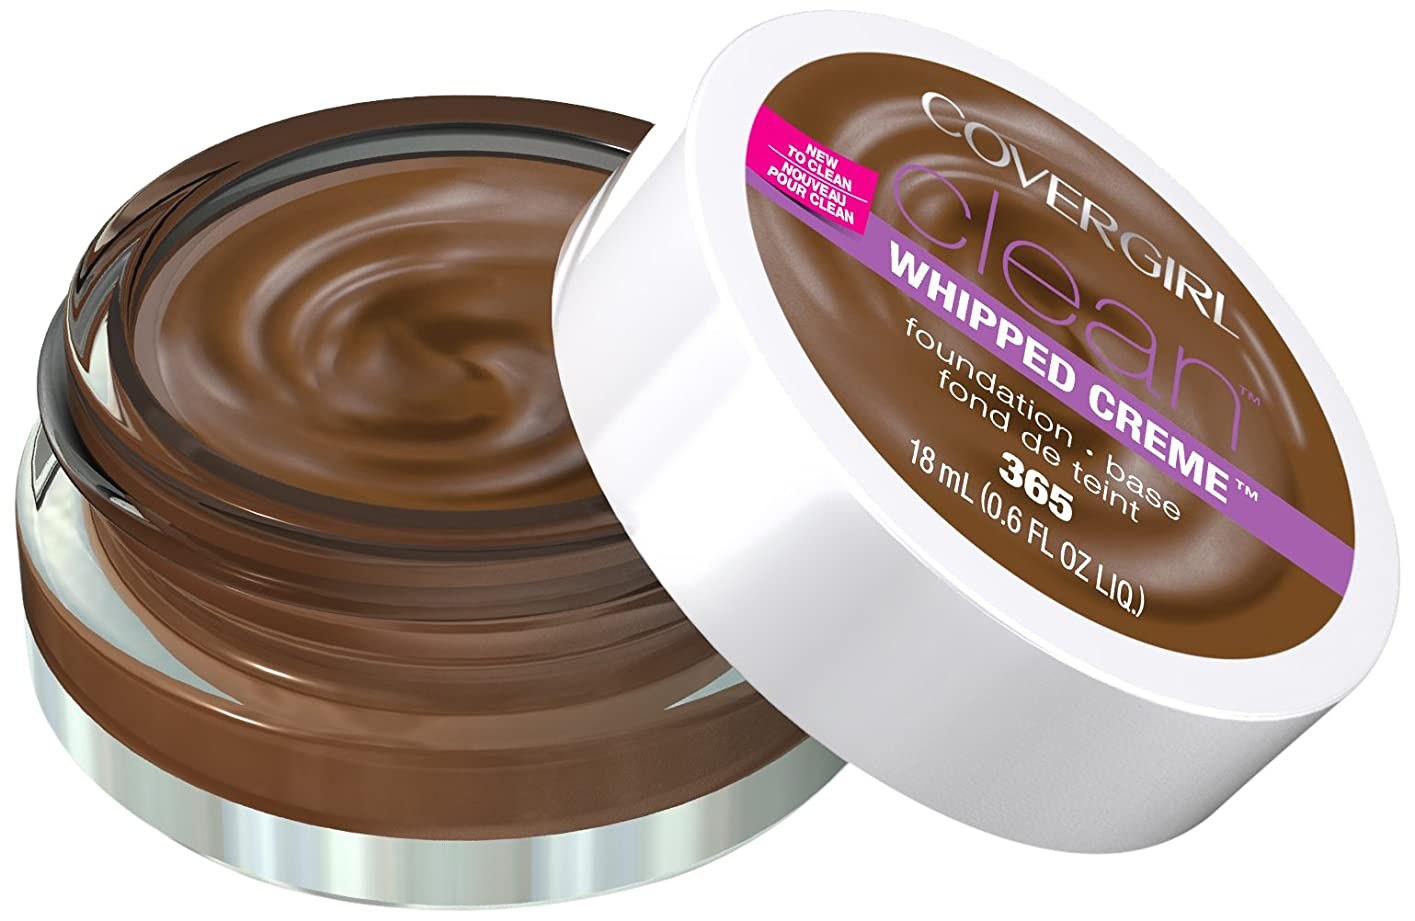 サーキュレーション絶望的な酸化物COVERGIRL CLEAN WHIPPED CRèME FOUNDATION #365 TAWNY